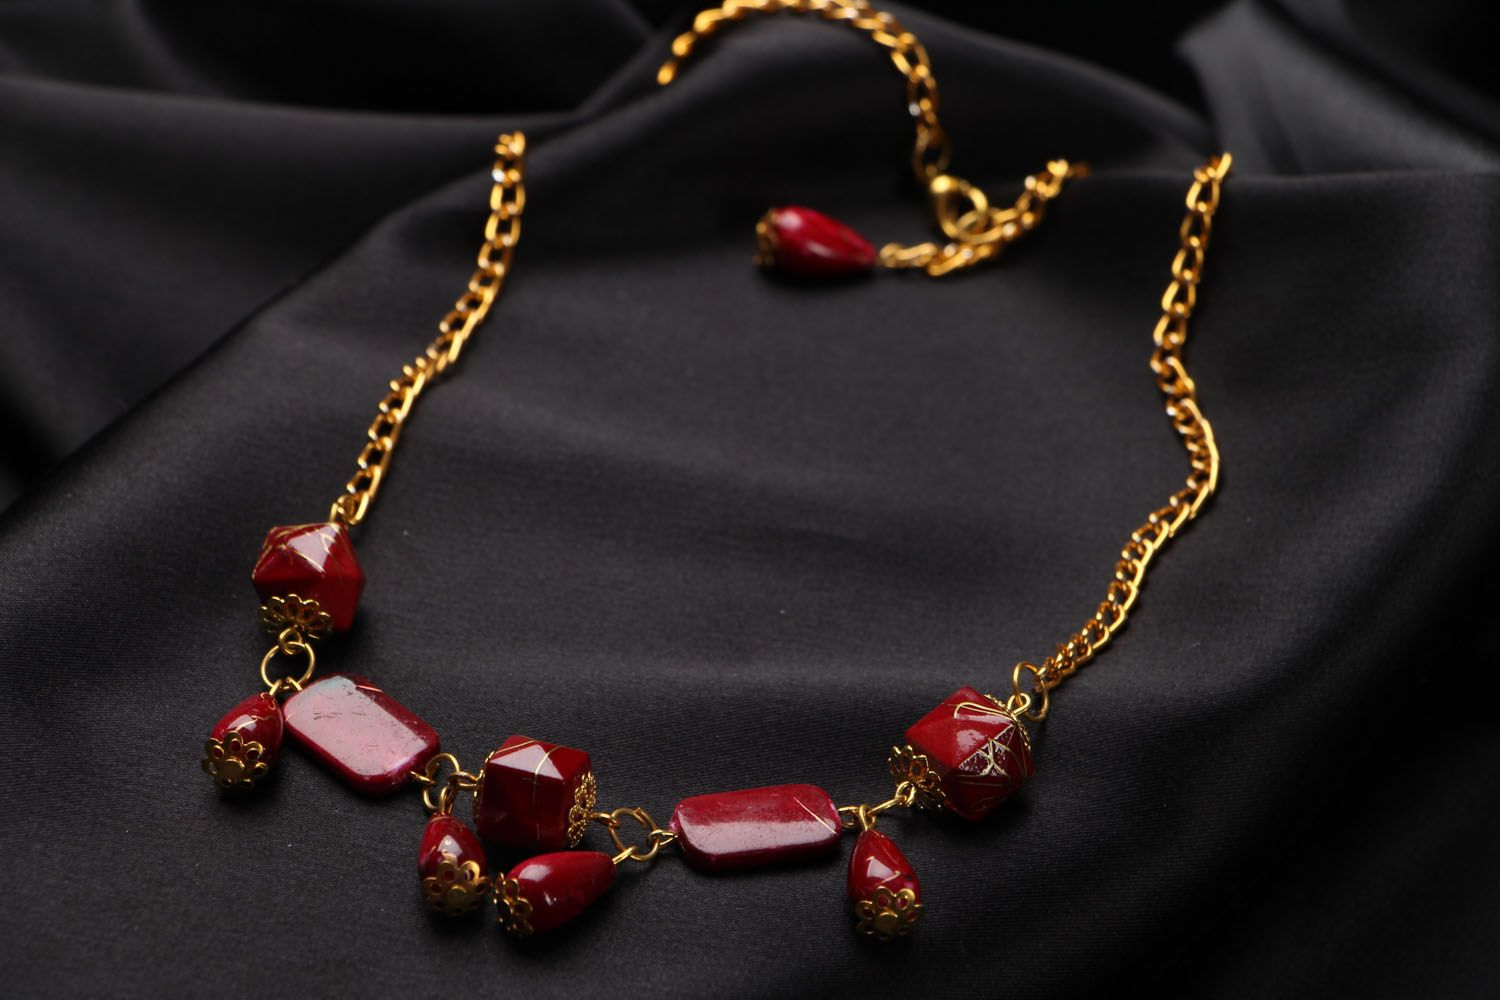 Necklace with beads photo 3